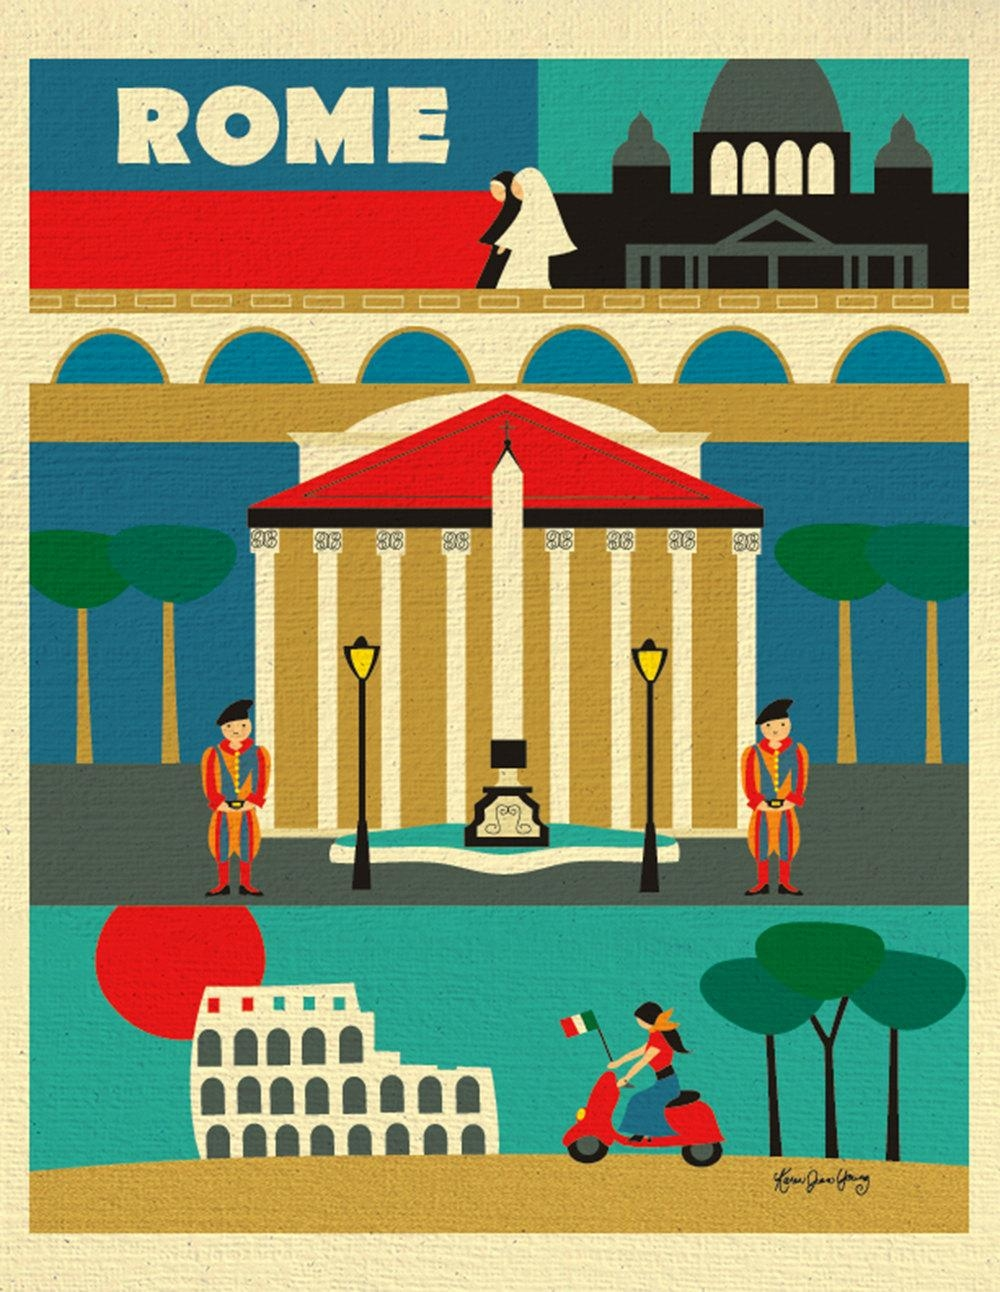 Rome Print Rome Wall Art Italy Travel Poster Rome Map Rome Within Italian Travel Wall Art (View 2 of 20)